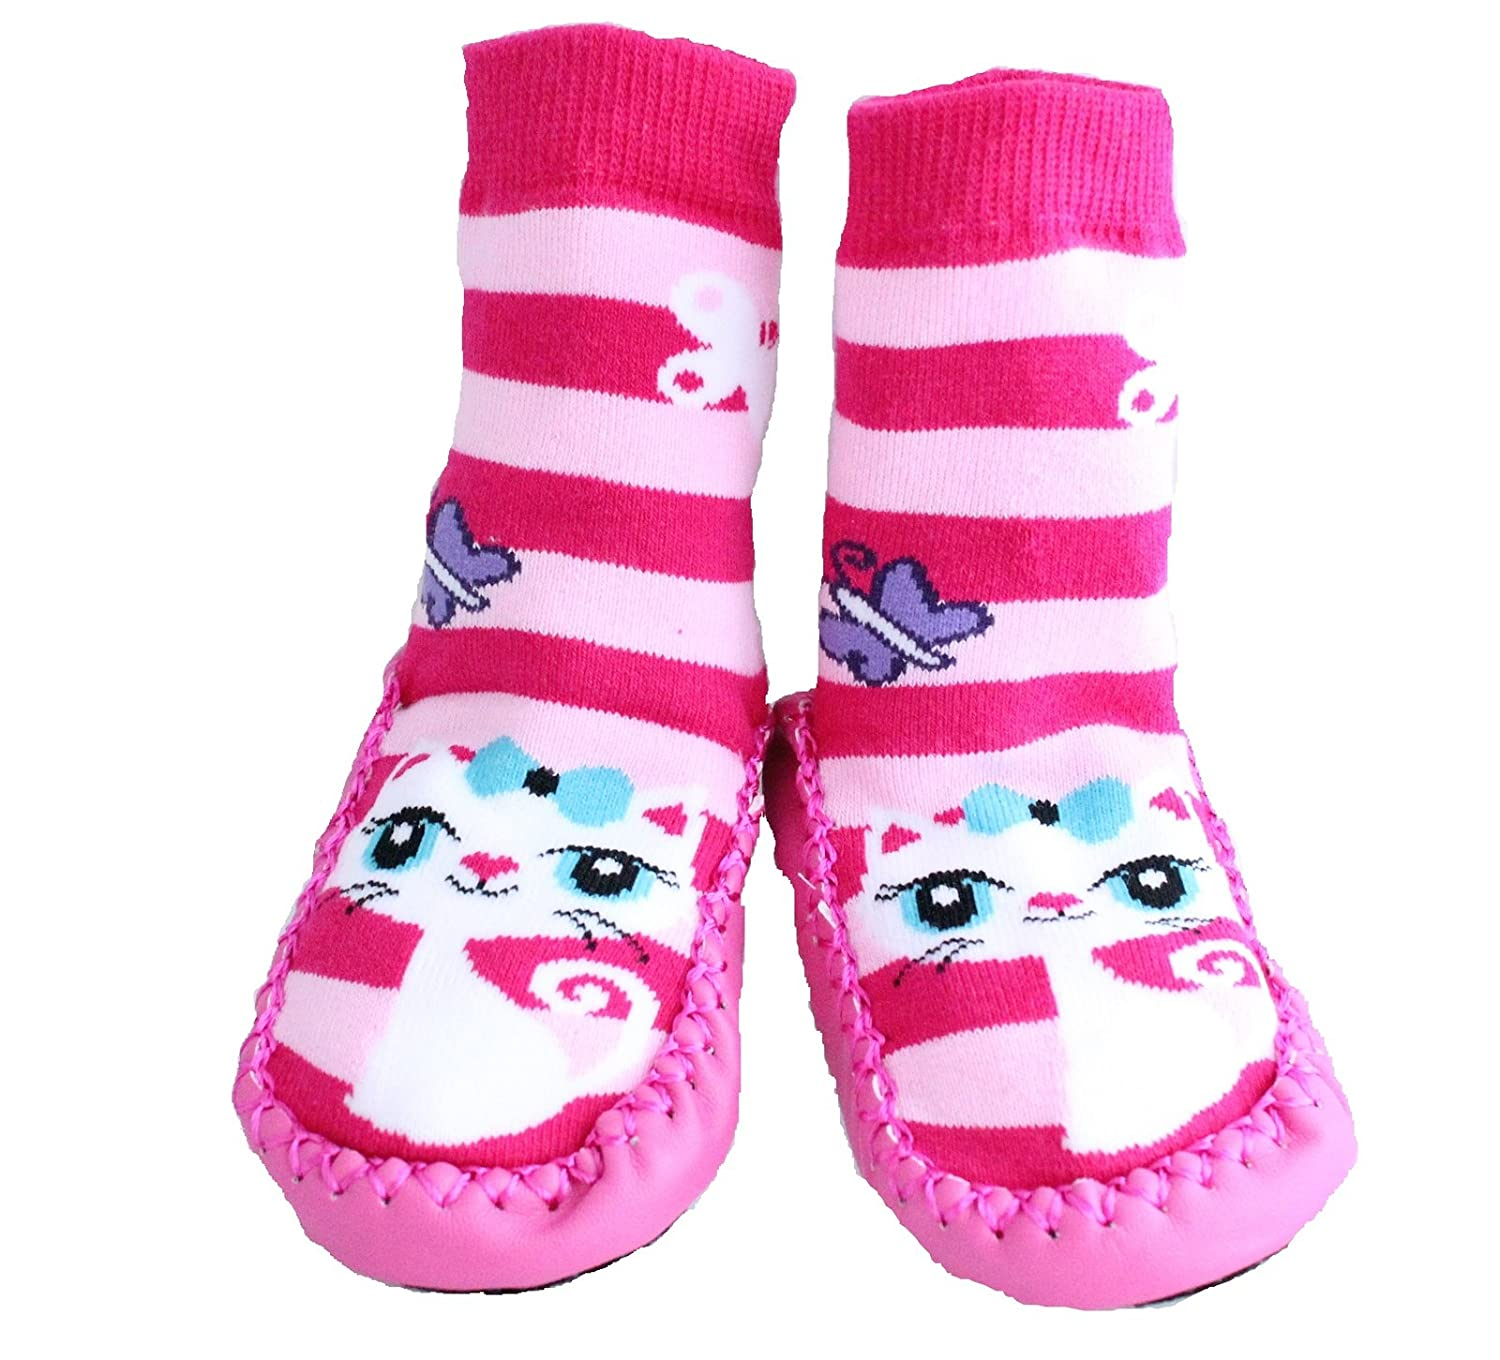 Baby Girl Toddlers Kids Indoor Slippers Shoes Socks Moccasins NON